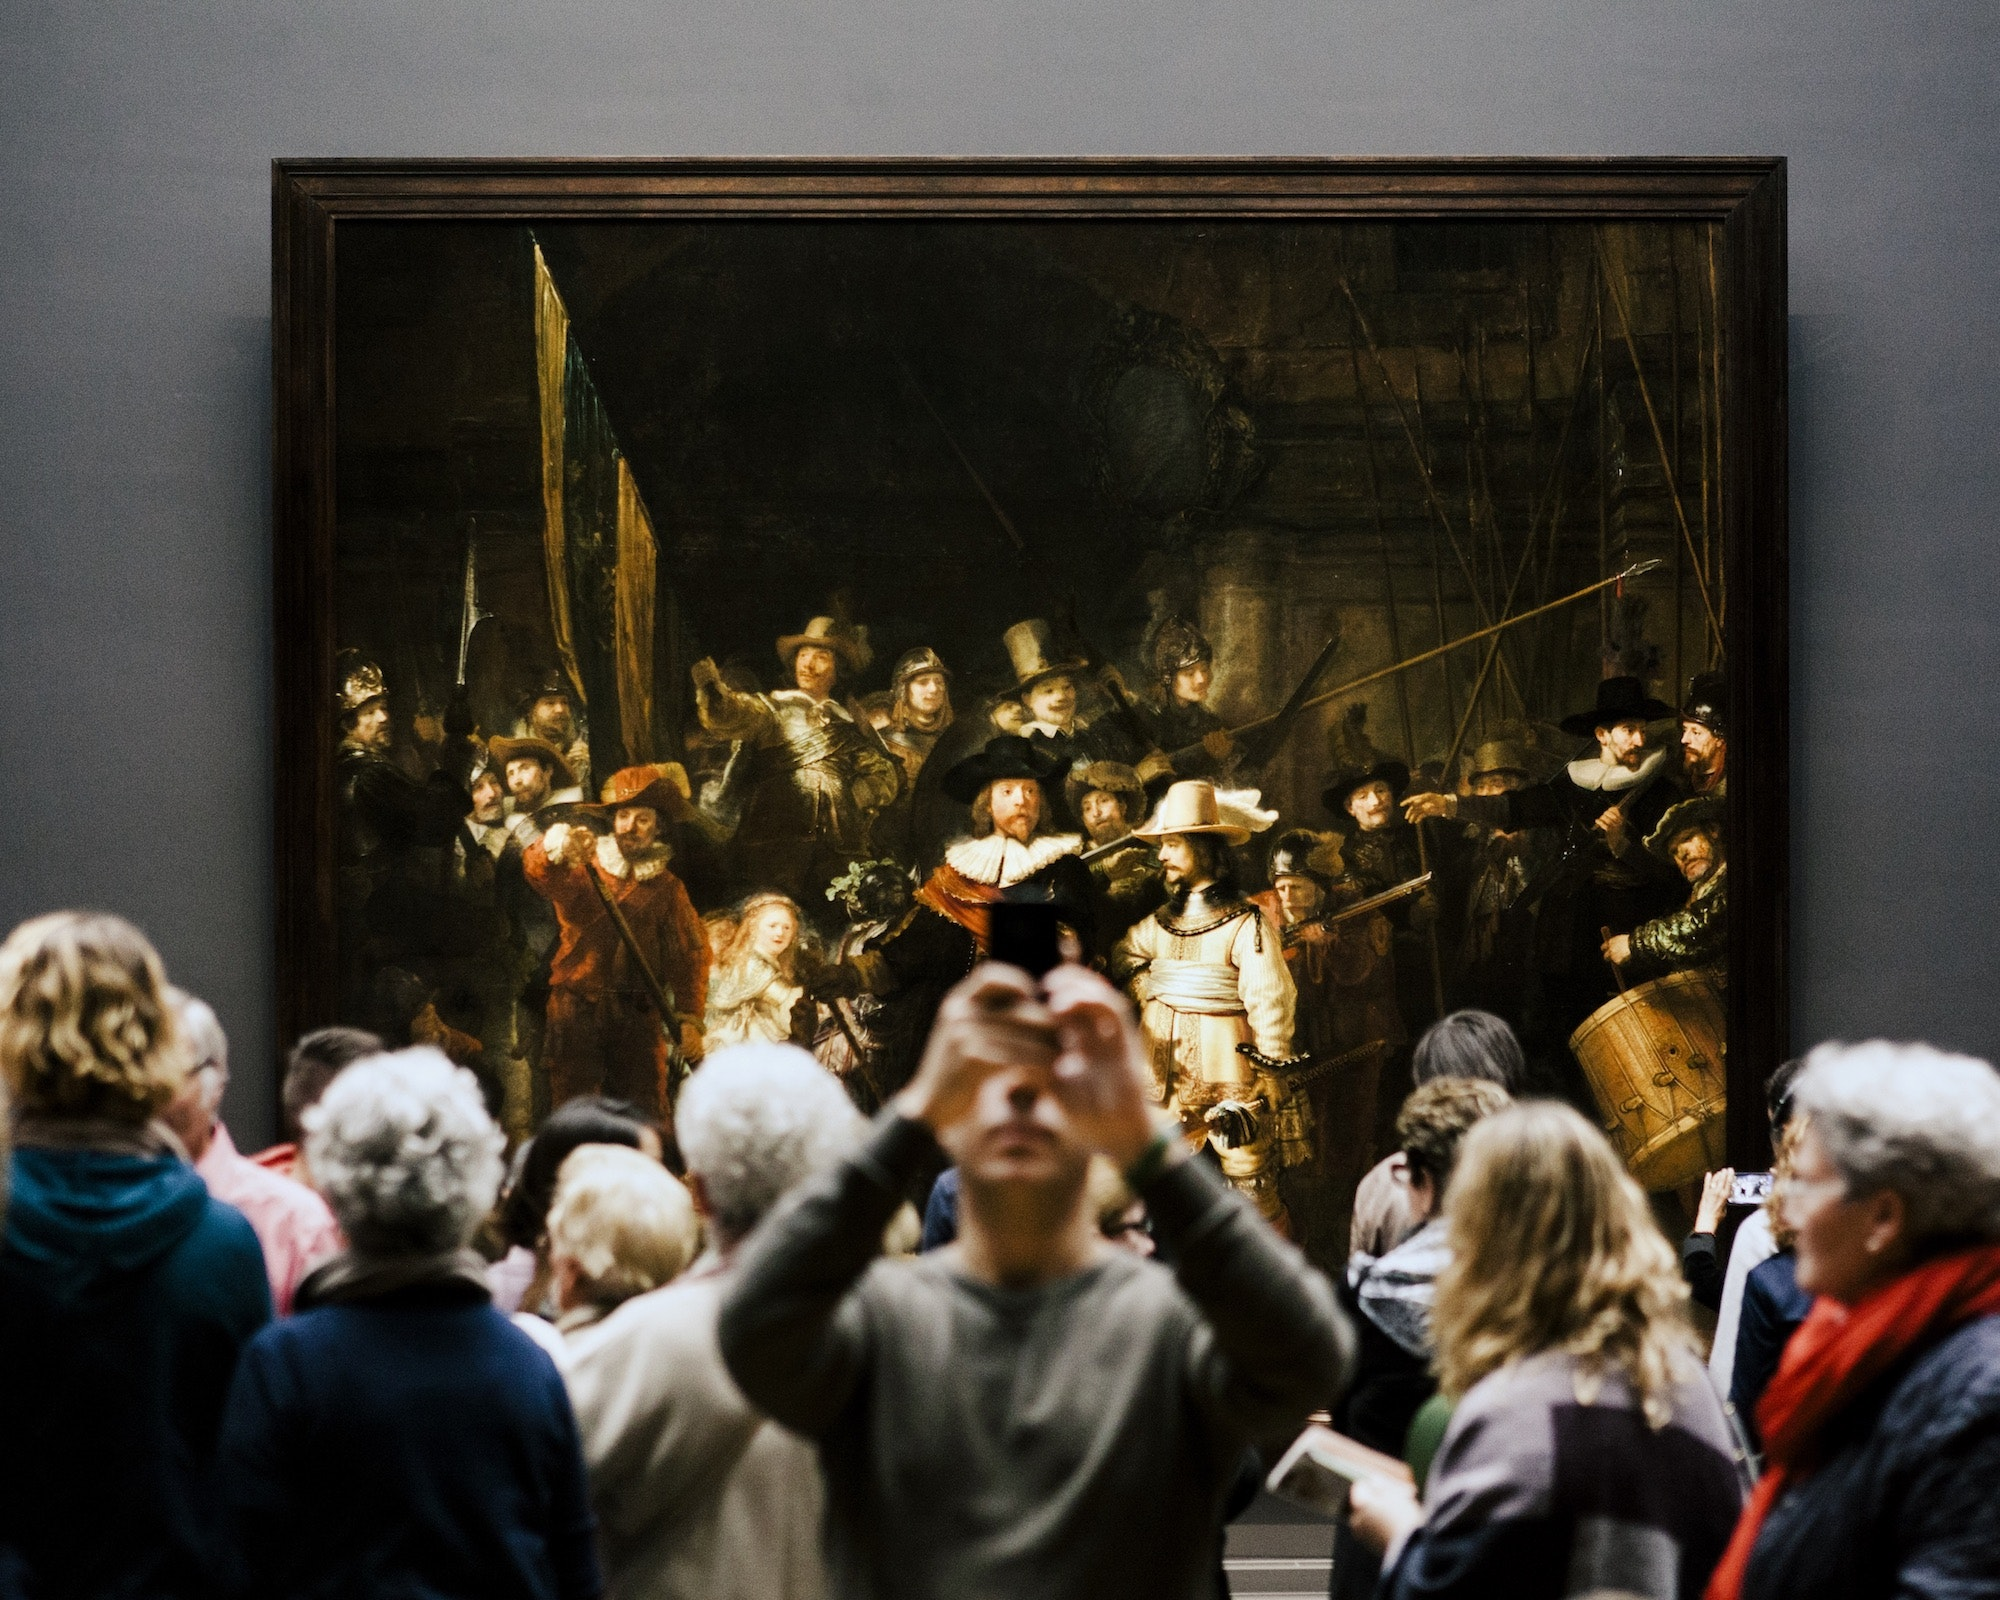 """Onlookers gather in front of Rembrandt's """"The Night Watch"""" in Amsterdam's Rijksmuseum."""